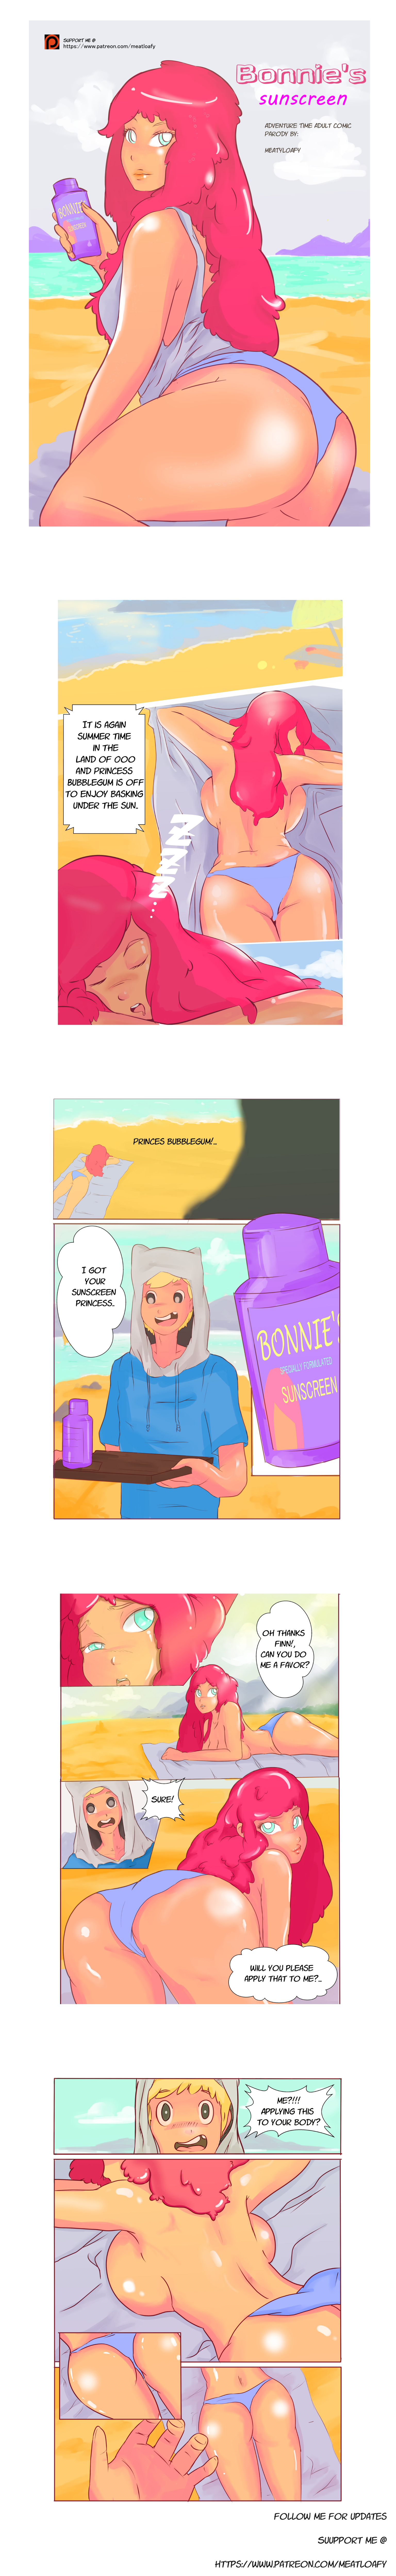 Bonnie's Sunscreen Cover PAGE 01-05